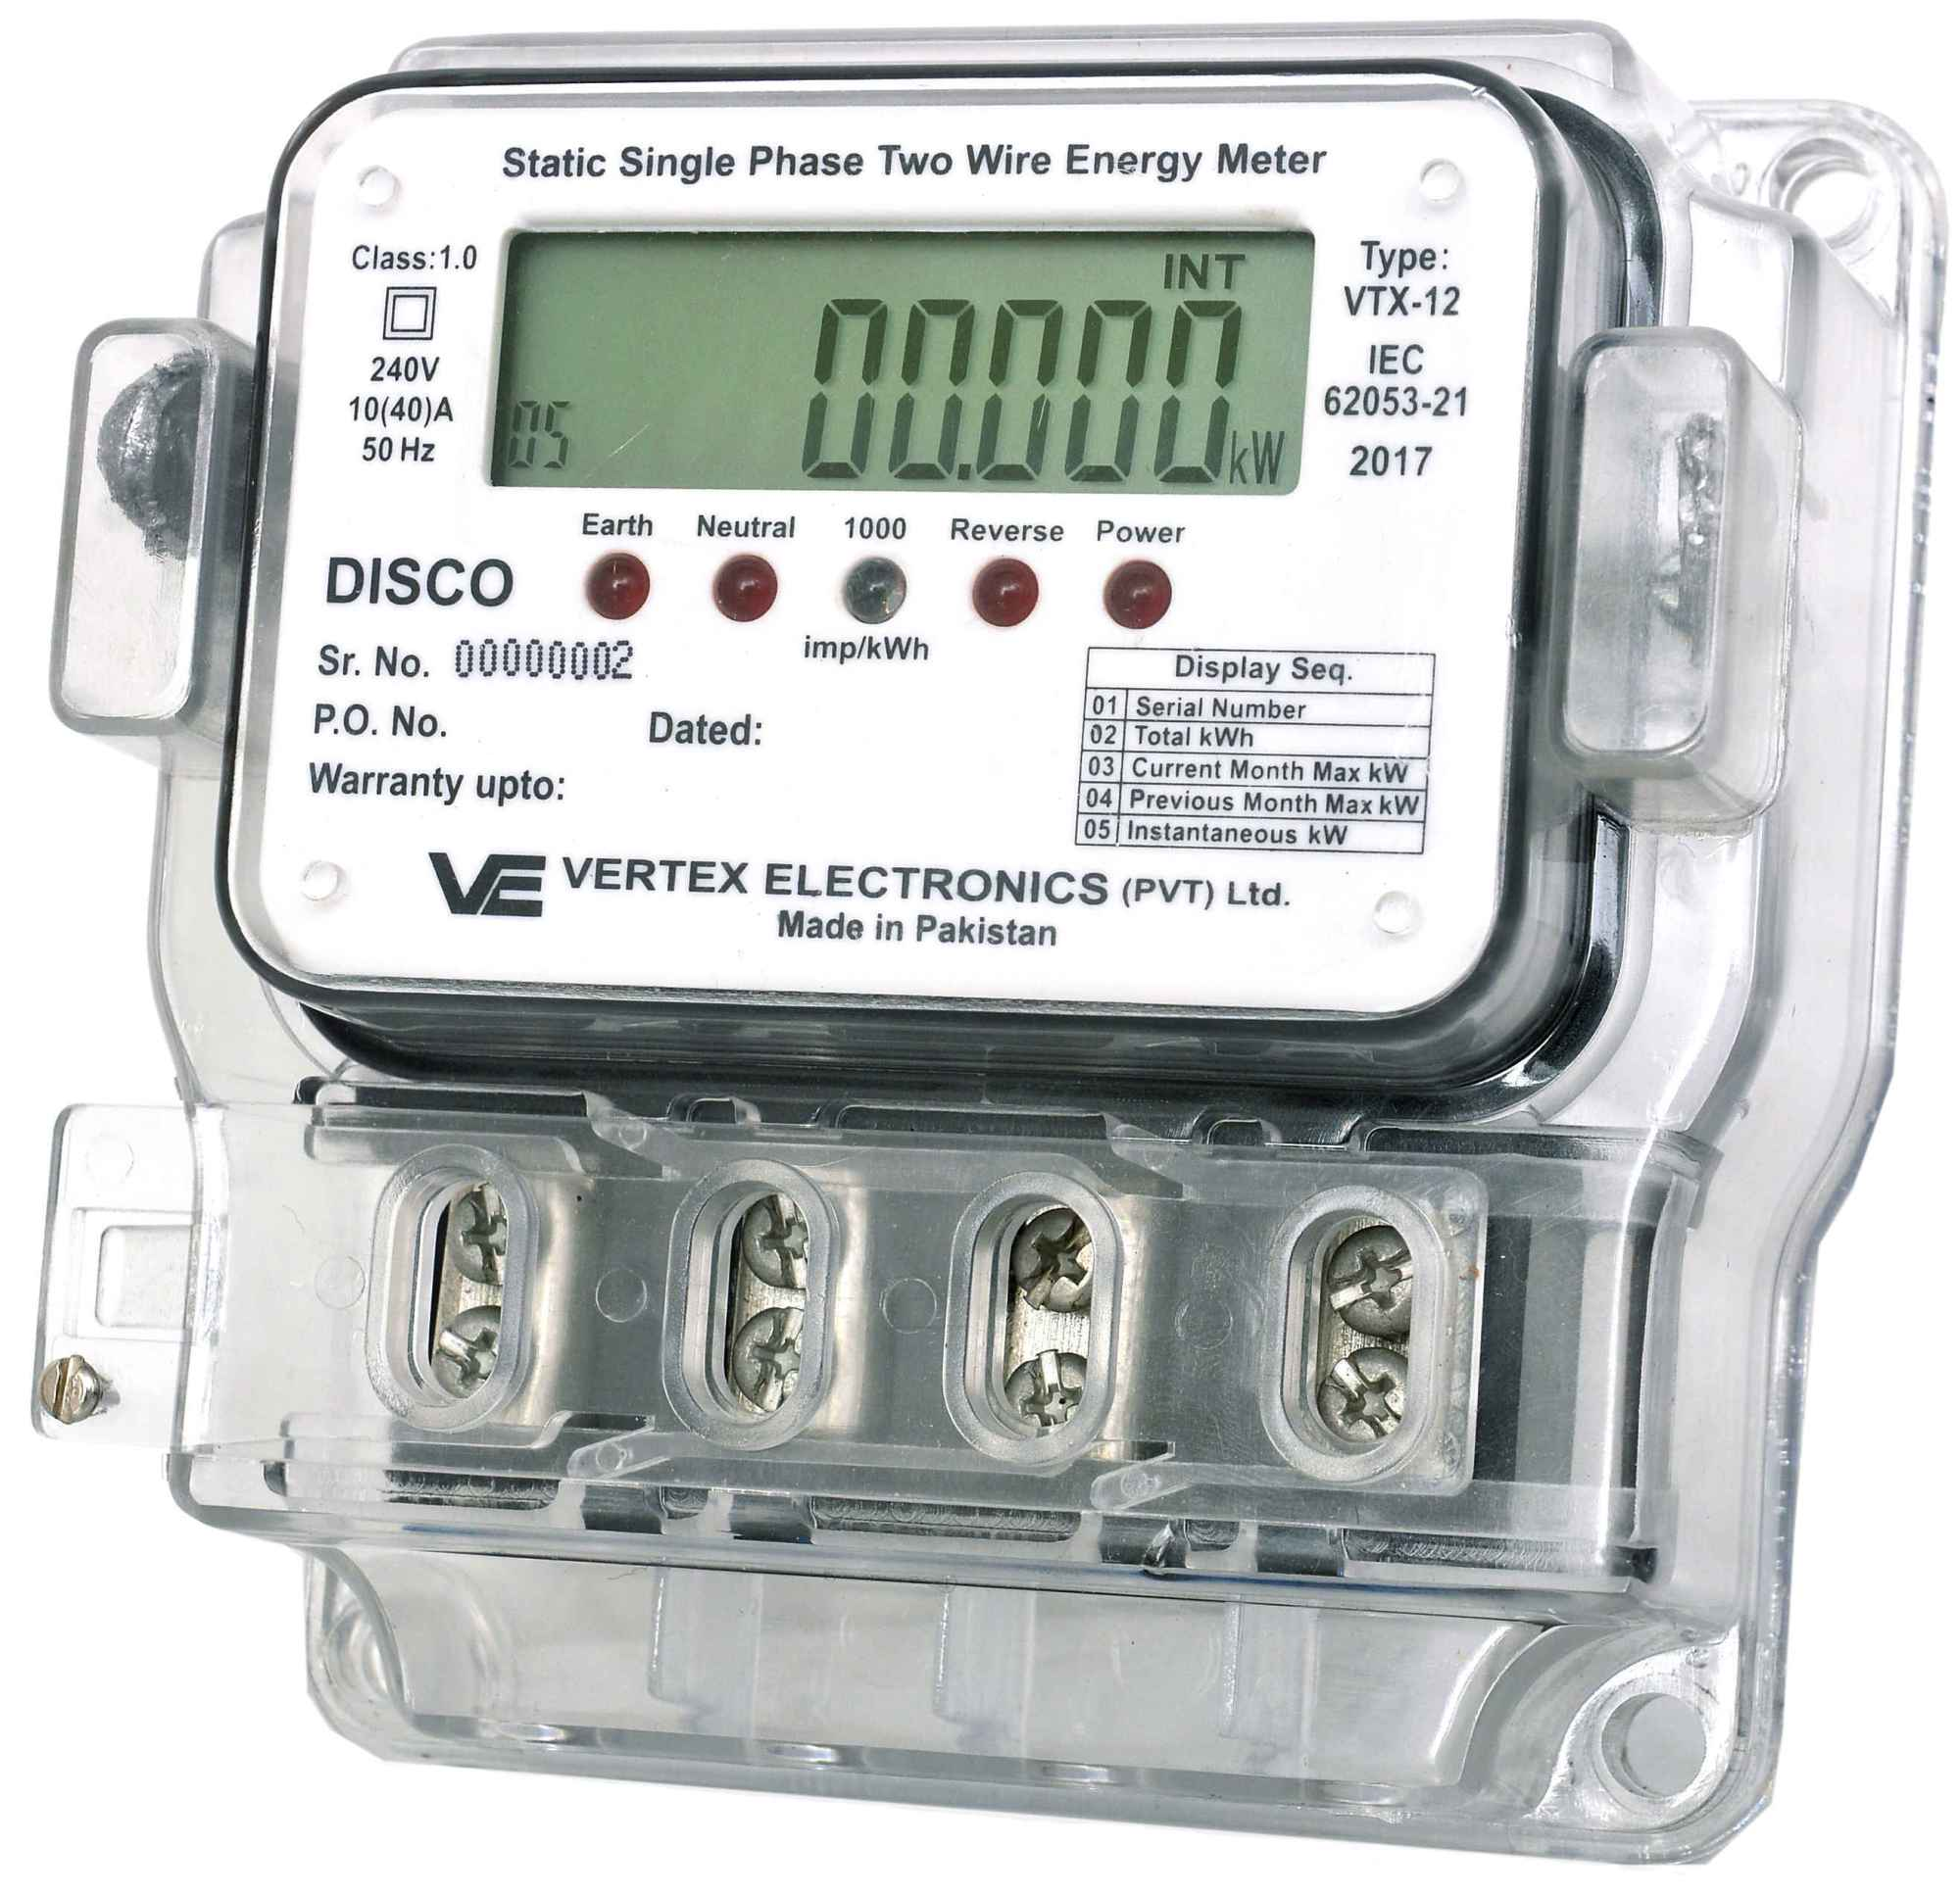 hight resolution of iec electric meter wiring diagram